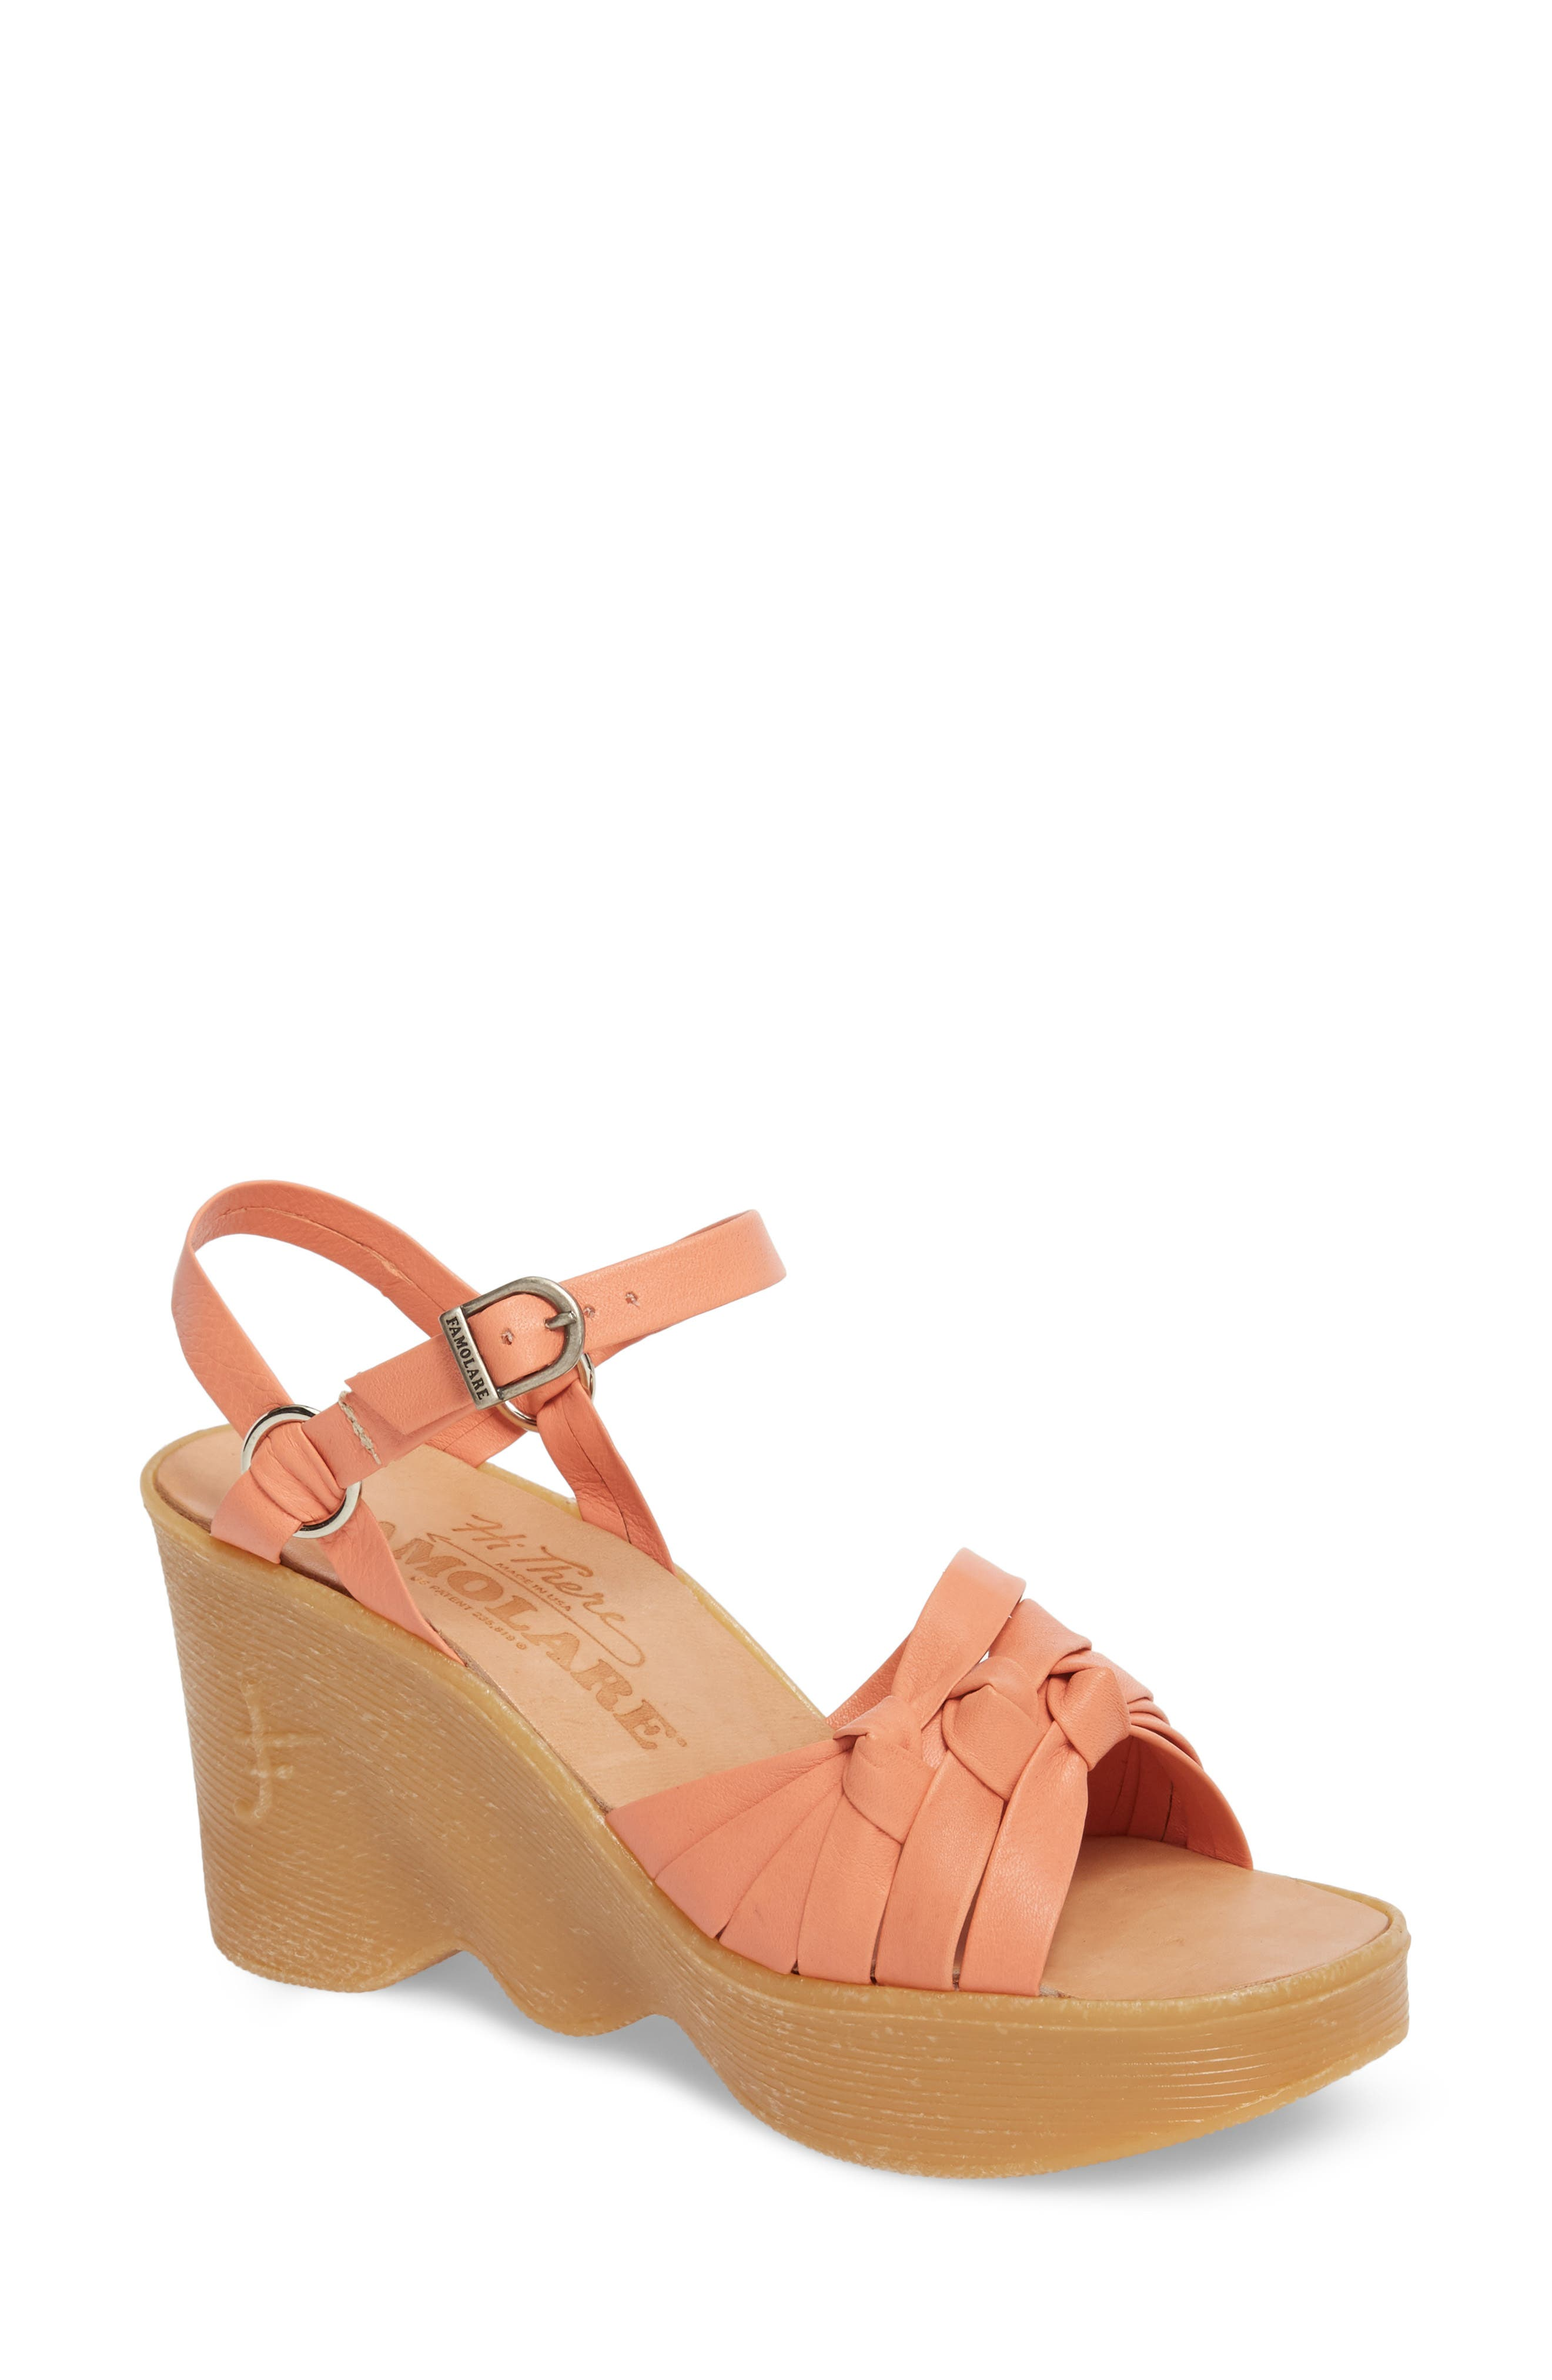 Knot So Fast Wedge Sandal,                         Main,                         color, Salmon Leather